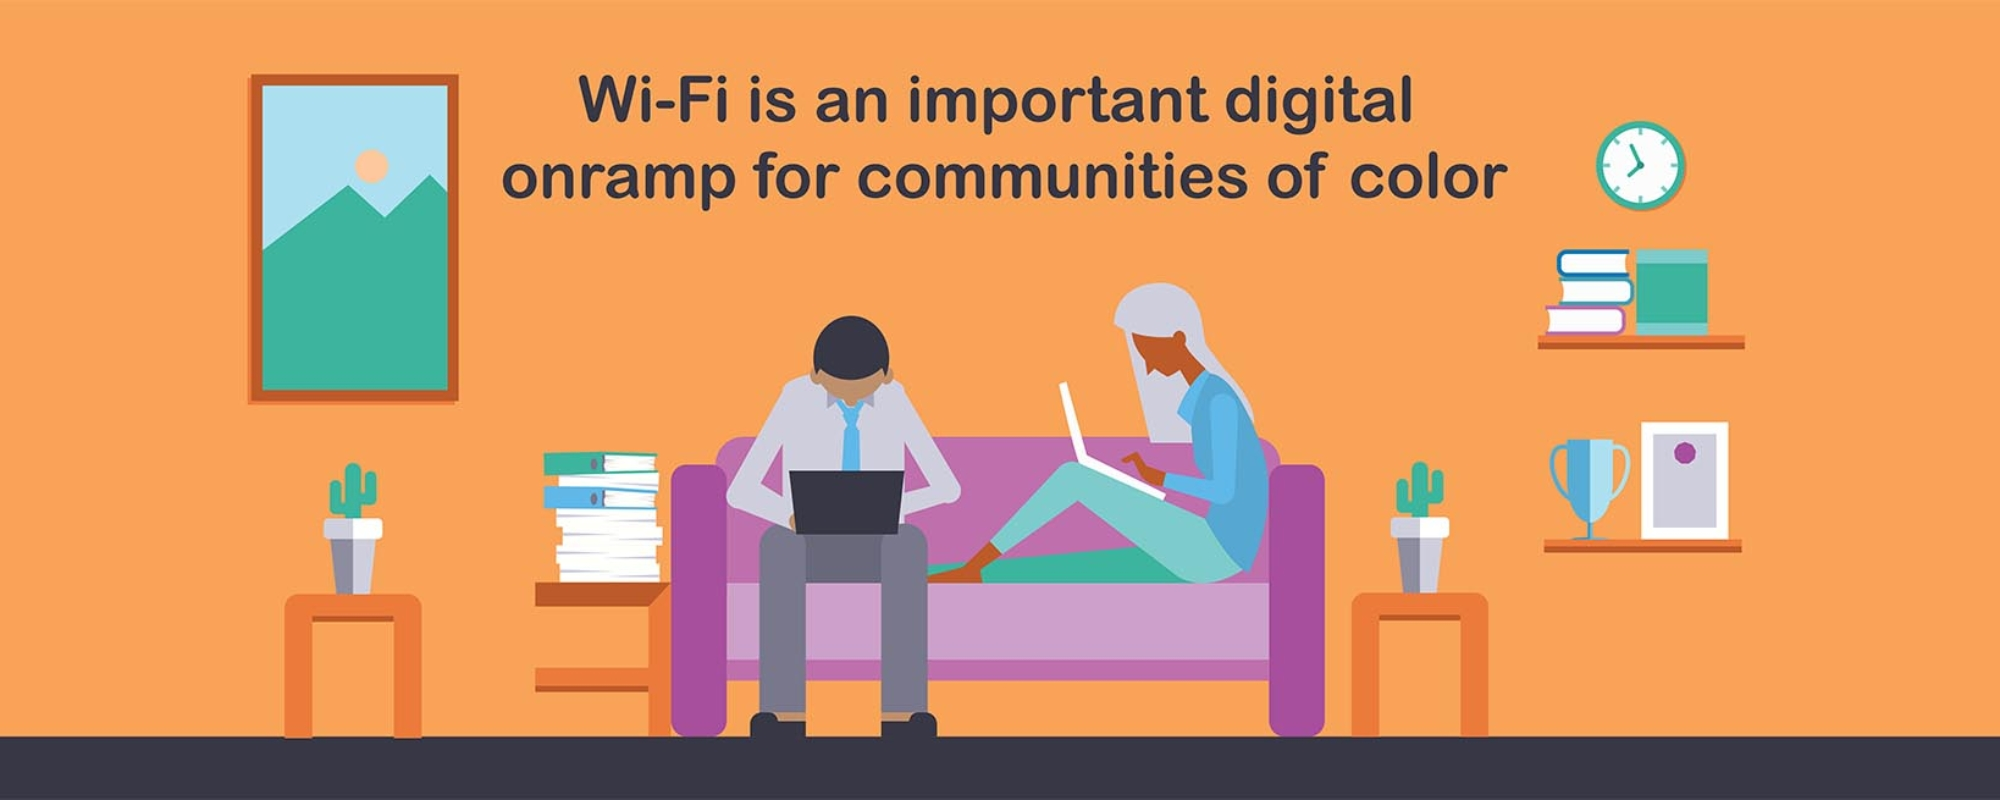 Wi-Fi is an important digital onramp for communities of color